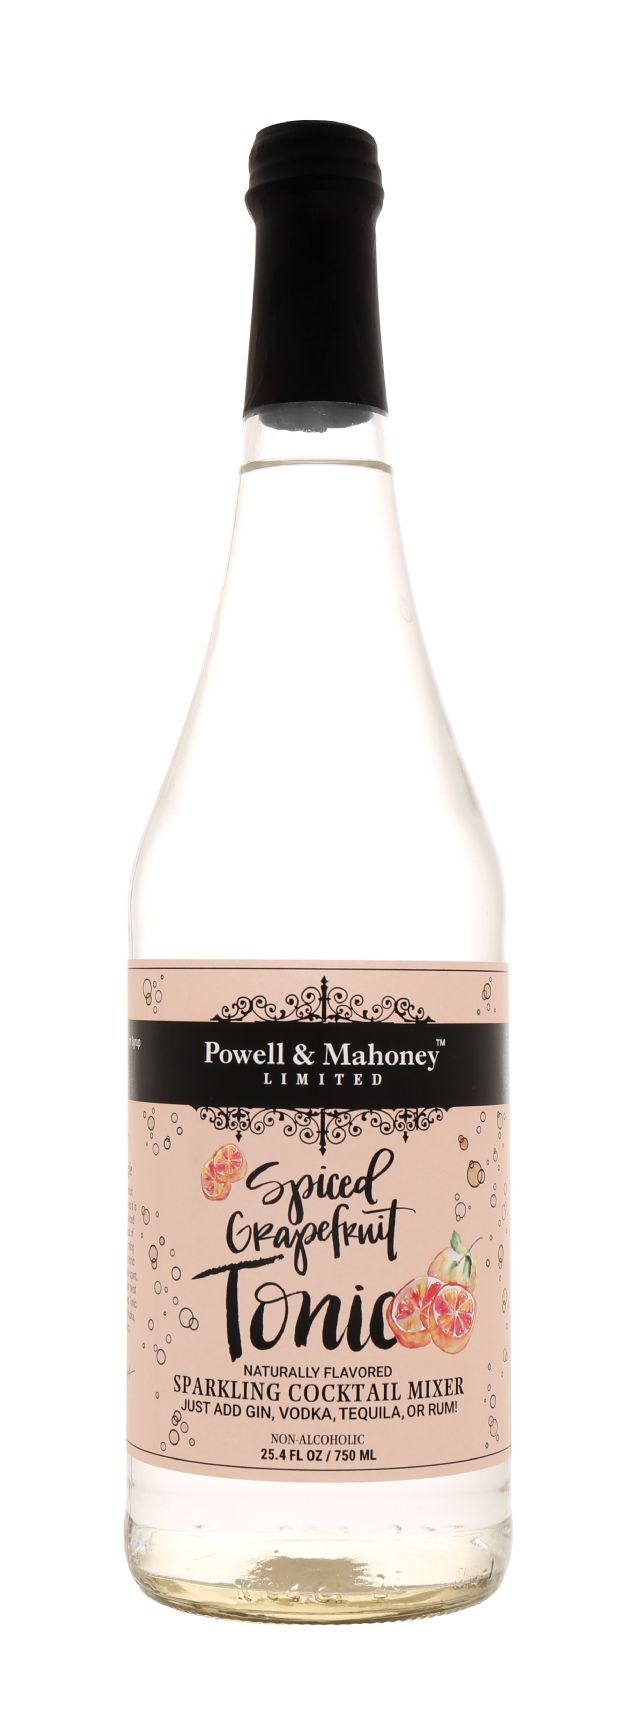 Powell & Mahoney: PM SpicedGrape Front